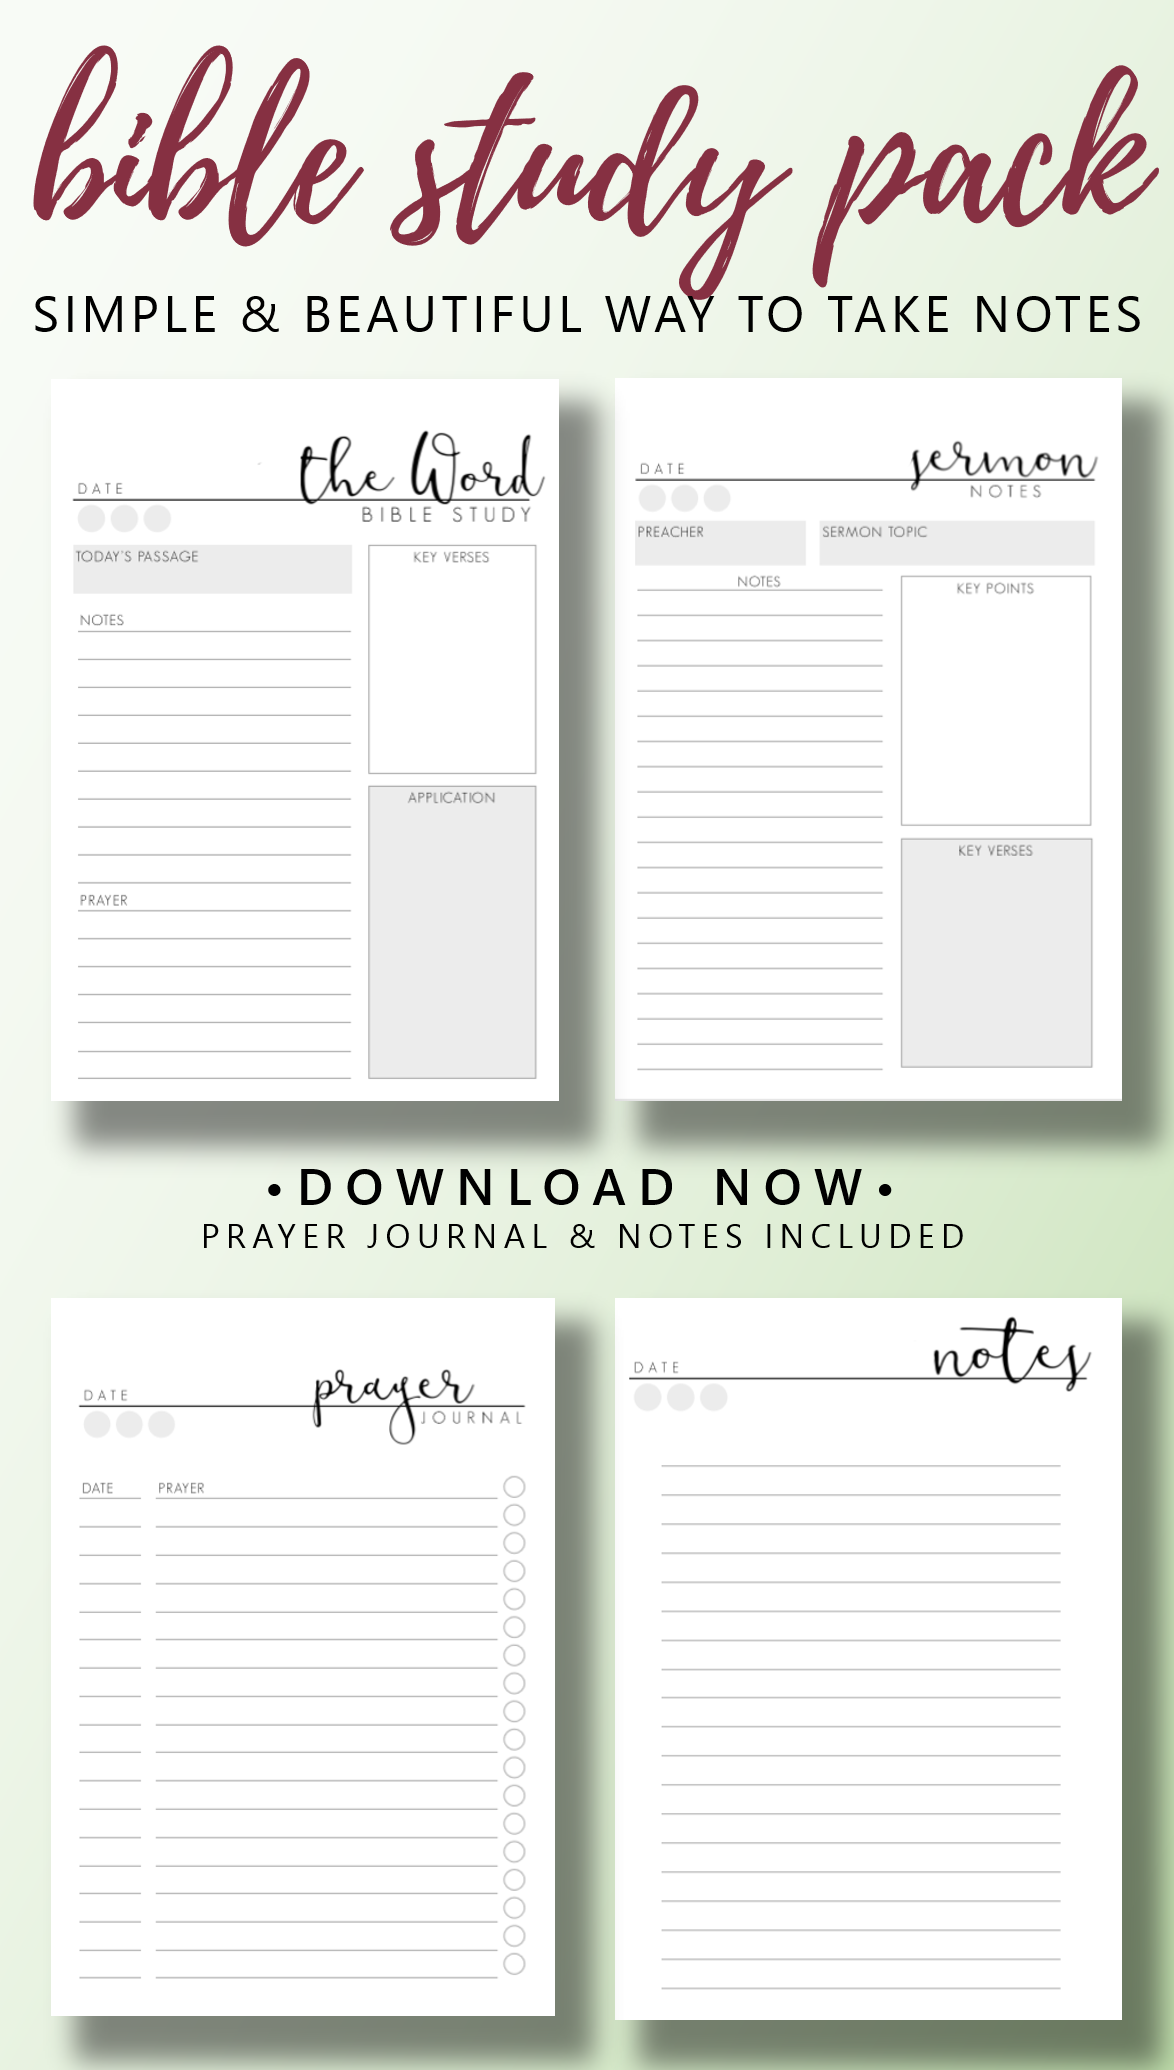 Dive Deeper In To God S Word With The Printable Bible Study Pack Includes Bible Study Template Sermon Not Bible Study Template Sermon Notes Bible Study Notes